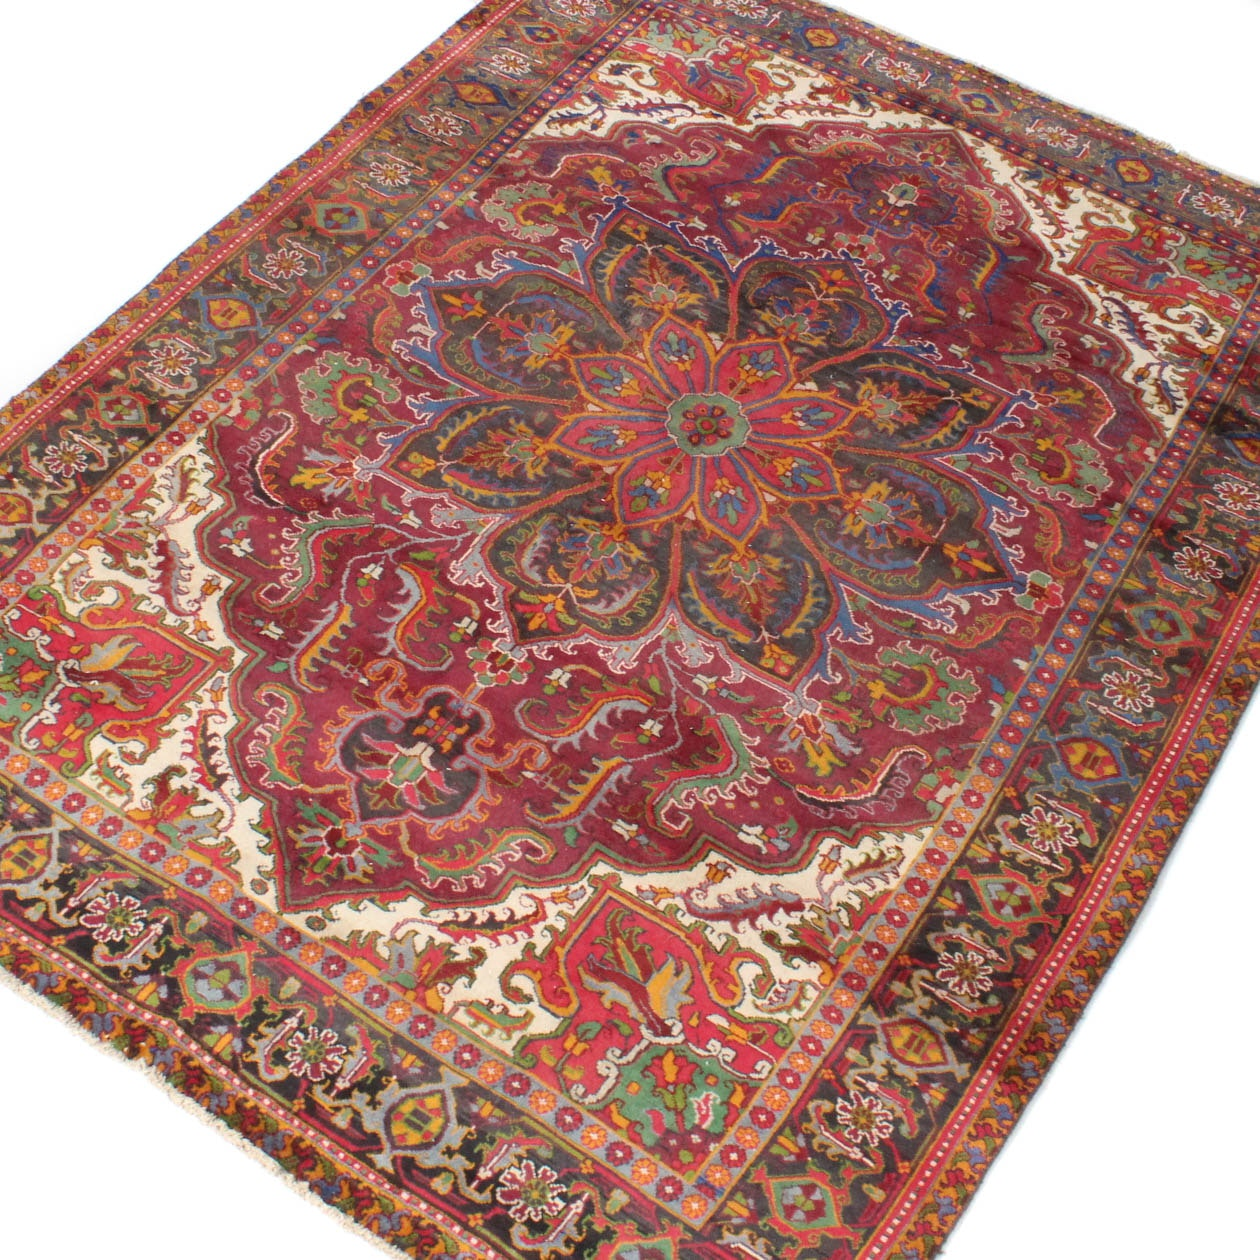 Vintage Hand-Knotted Persian Serapi Heriz Rug